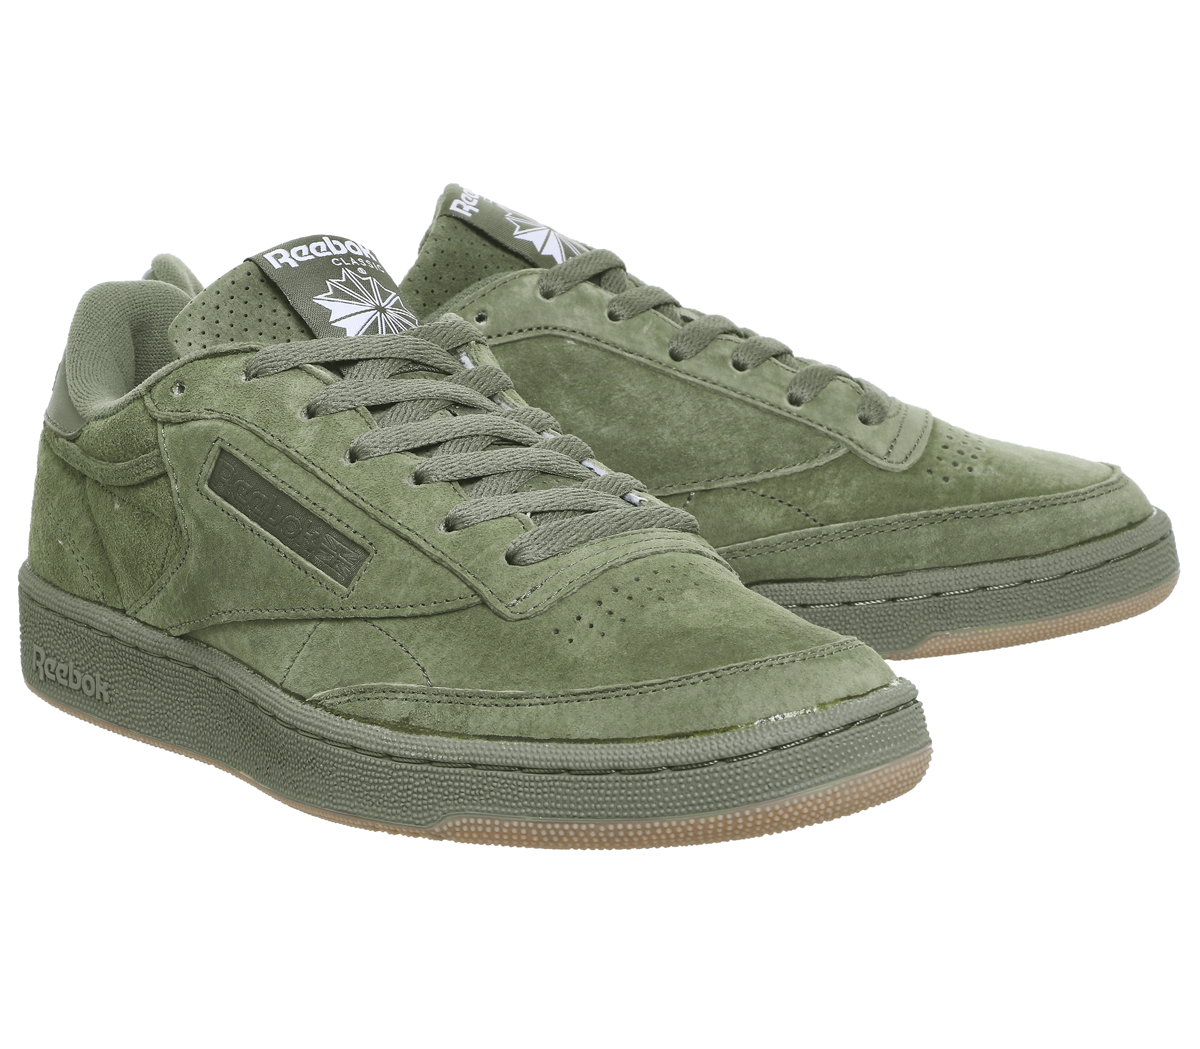 38d7f783923 Reebok Club C85 Trainers HUNTER GREEN GUM SG Trainers Shoes